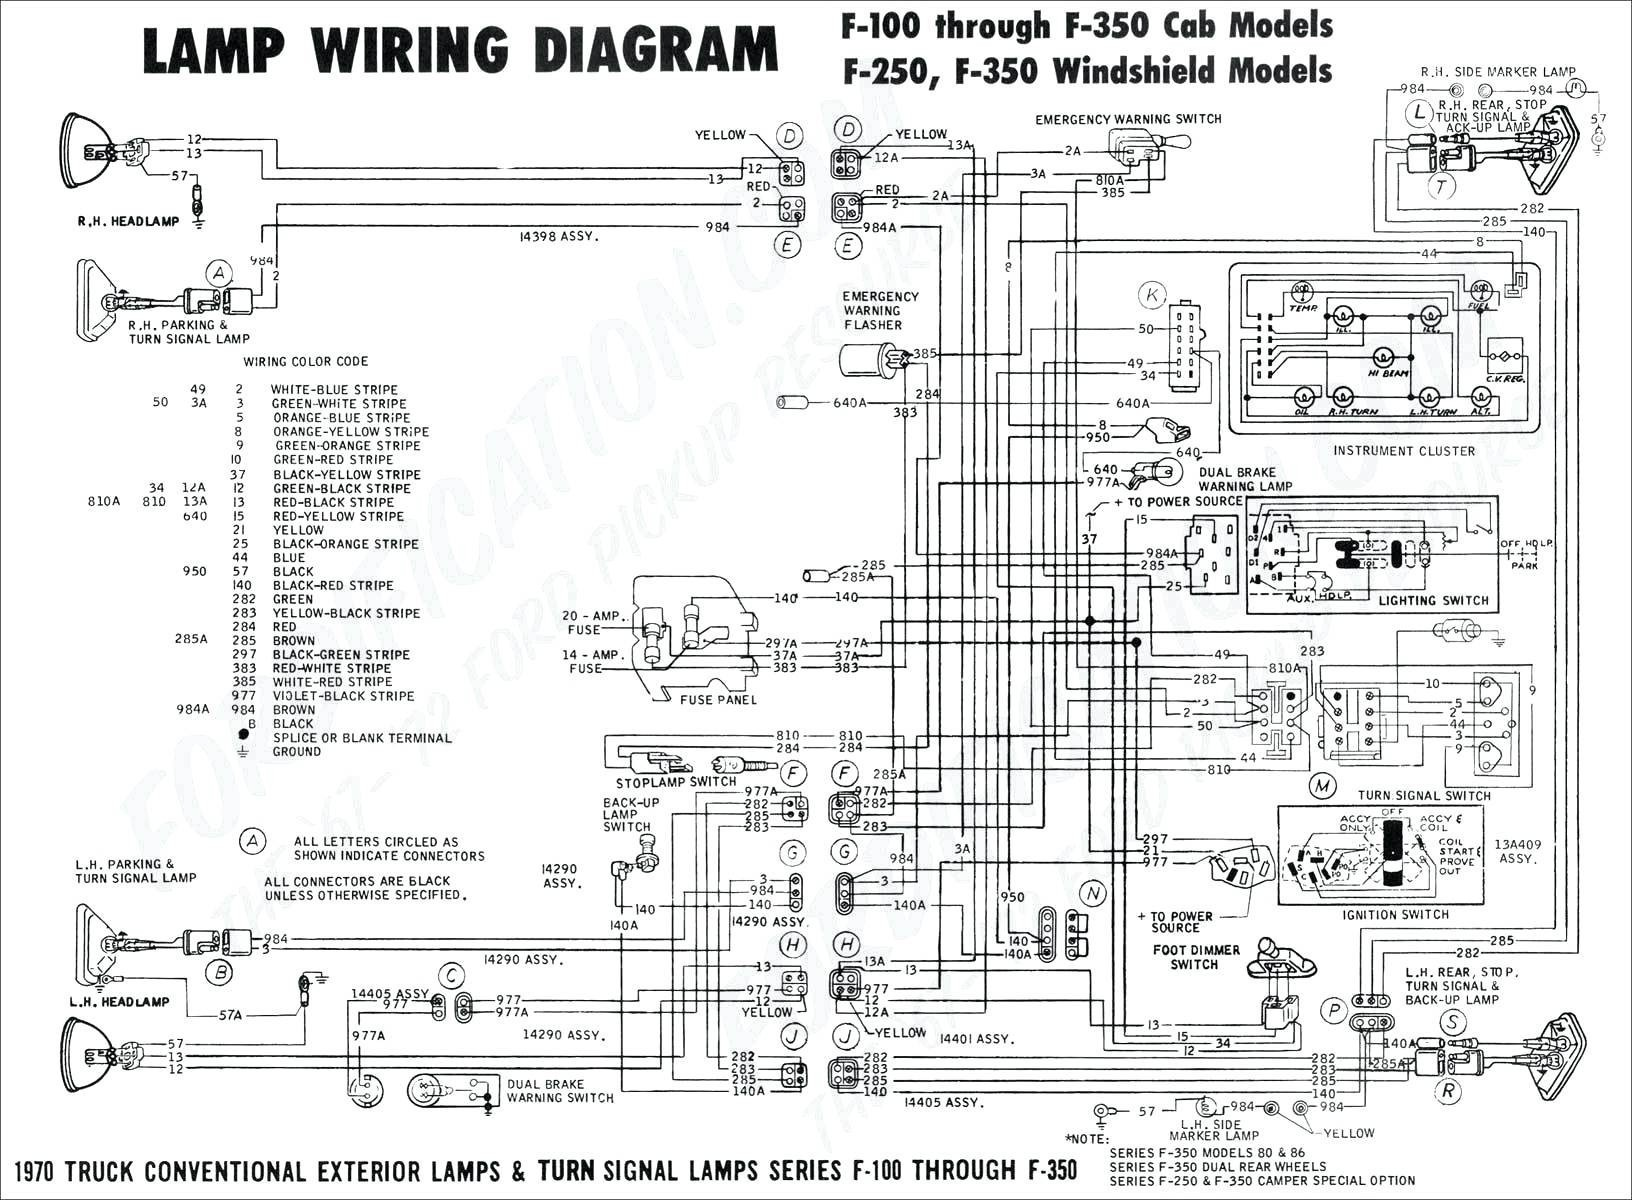 2004 chevy trailblazer ignition wiring diagram book of 7 2002 chevy rh zookastar 2004 chevy blazer radio wiring harness 2004 chevy blazer radio wiring